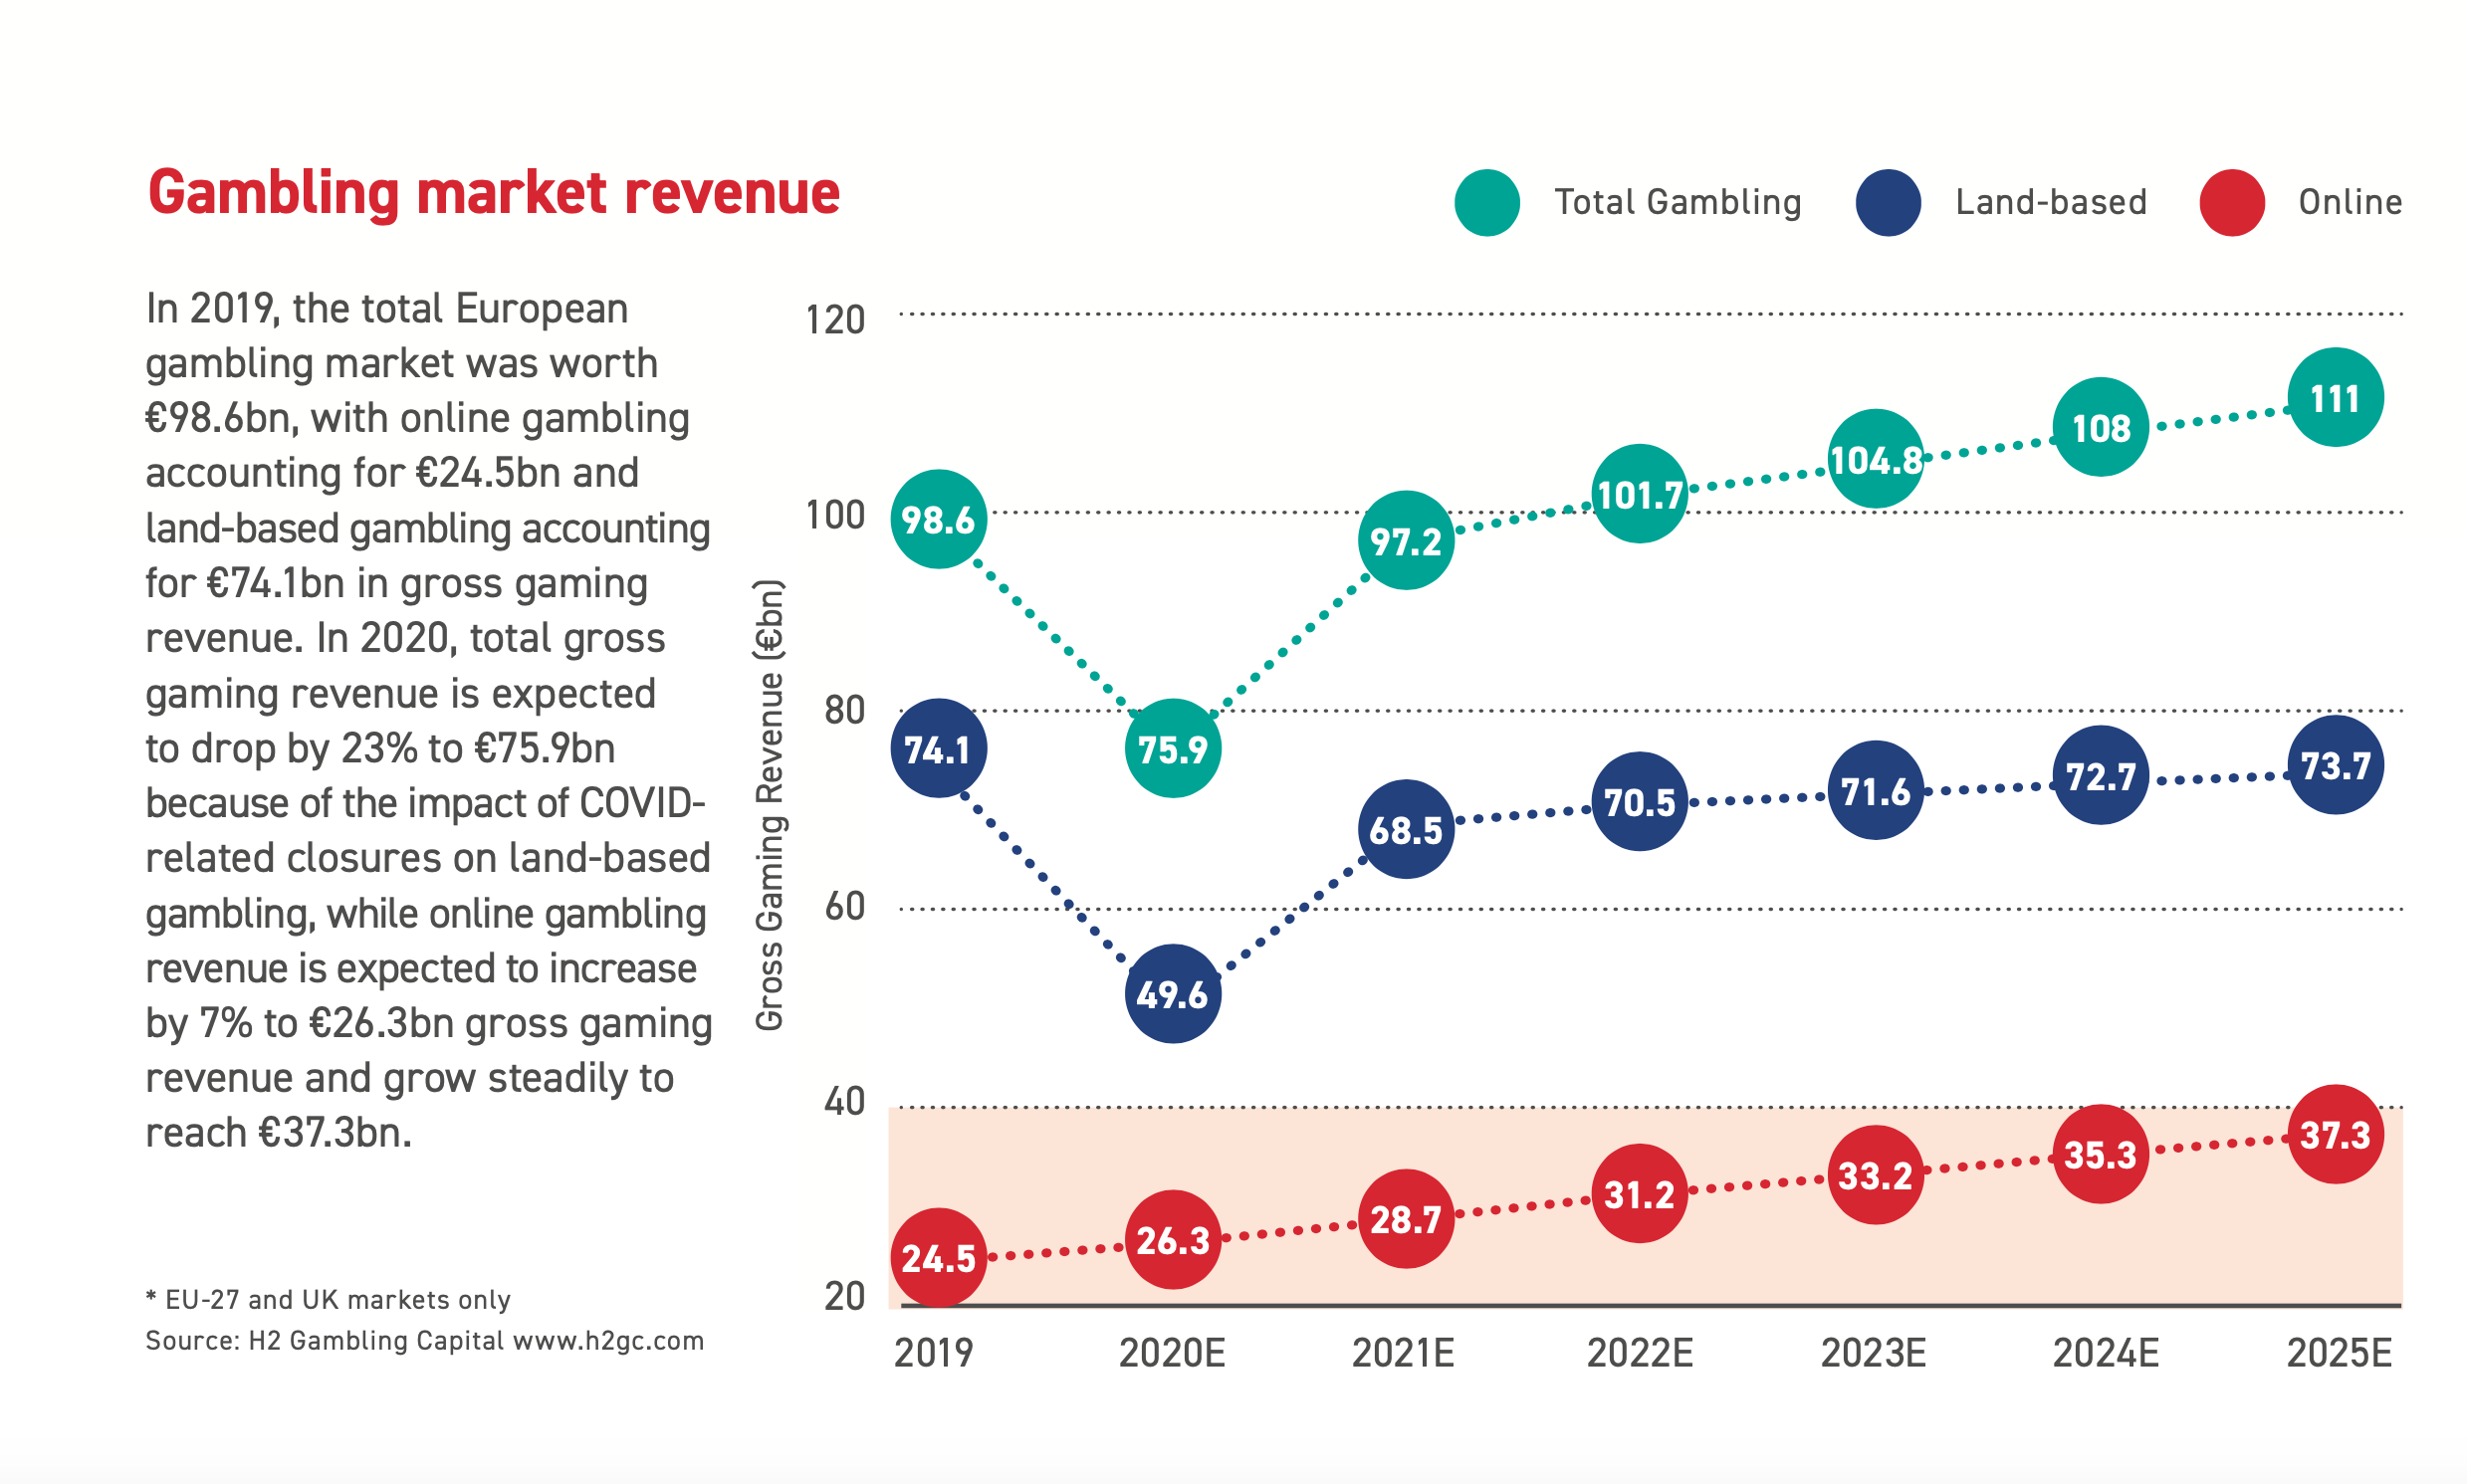 Online and land-based revenues in the European gambling market